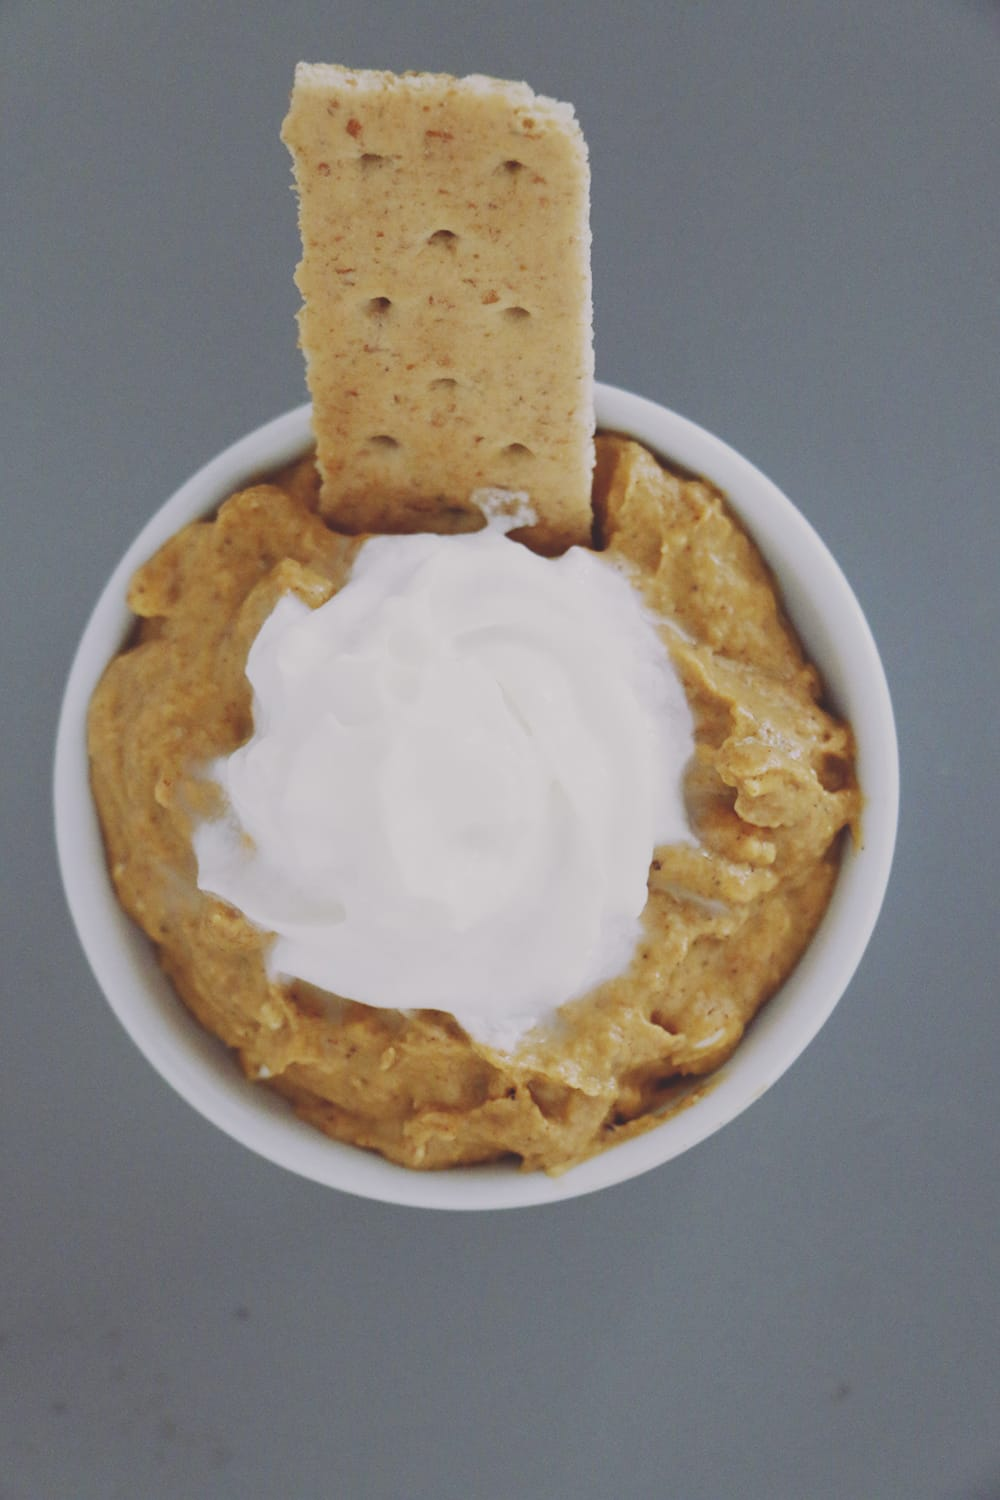 Bring something new to your autumn get-togethers! This pumpkin cheesecake dip is sure to be a huge hit for the whole family!